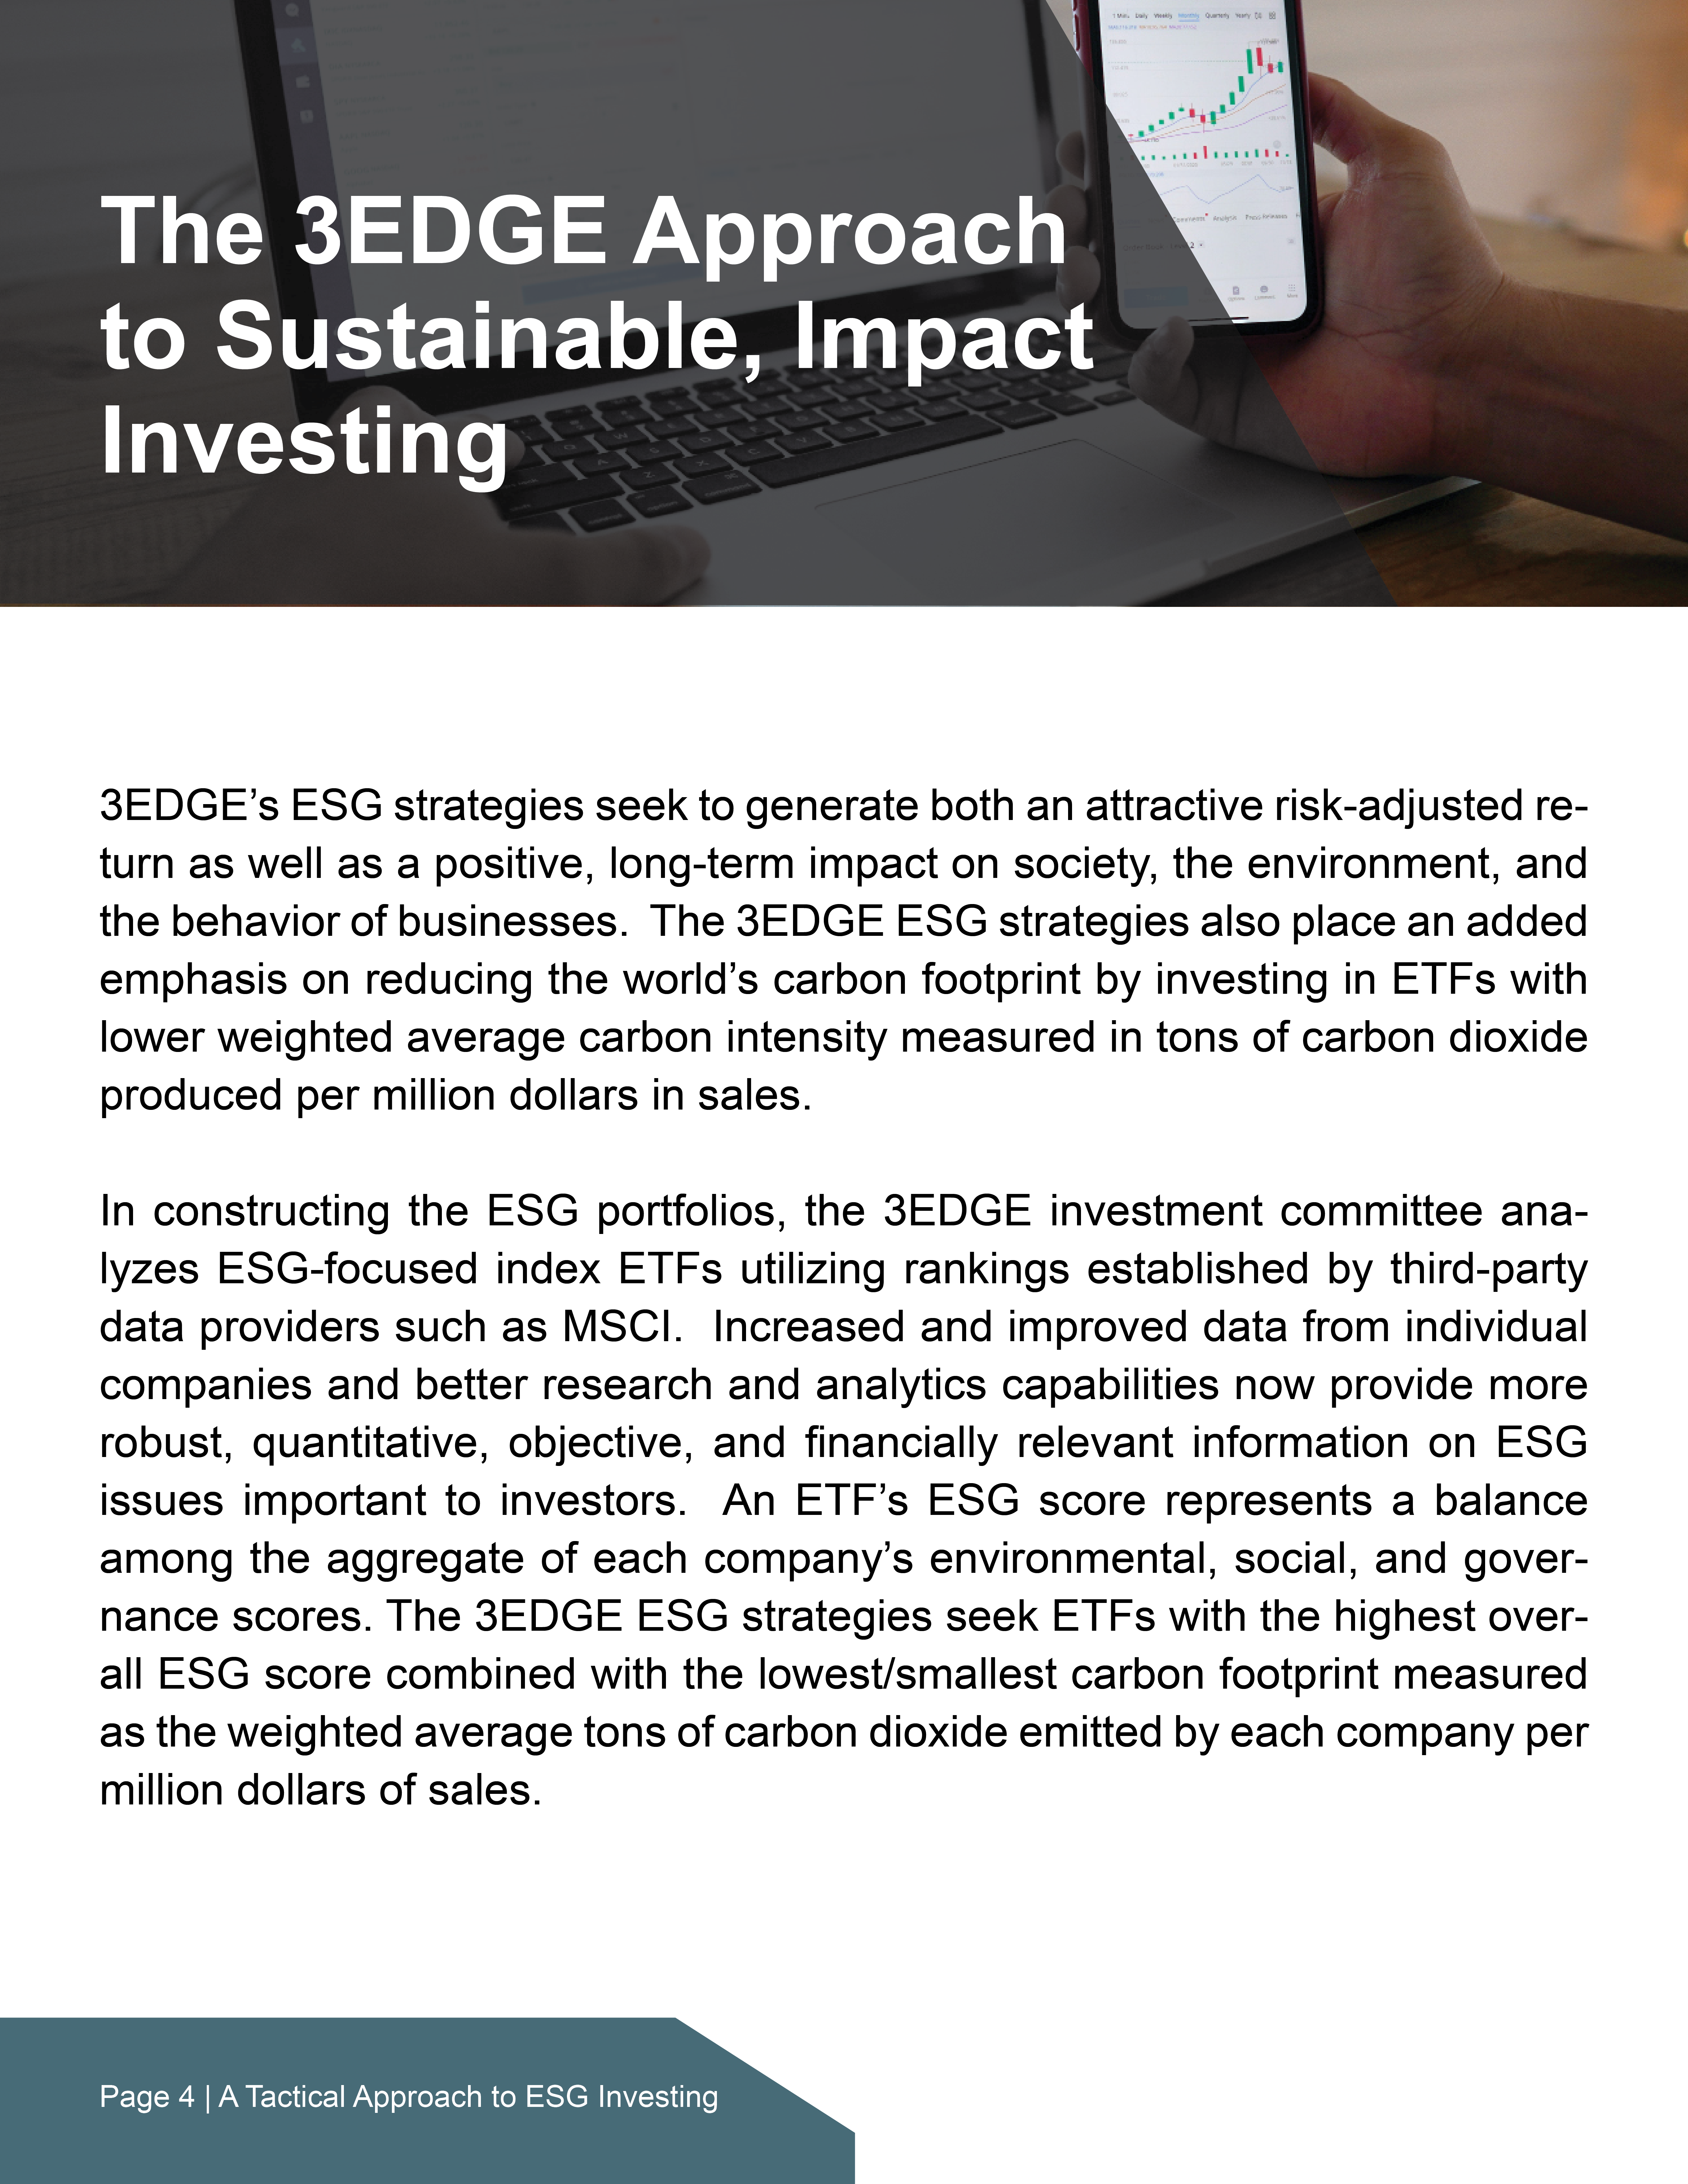 A Tactical Approach to ESG Investing4